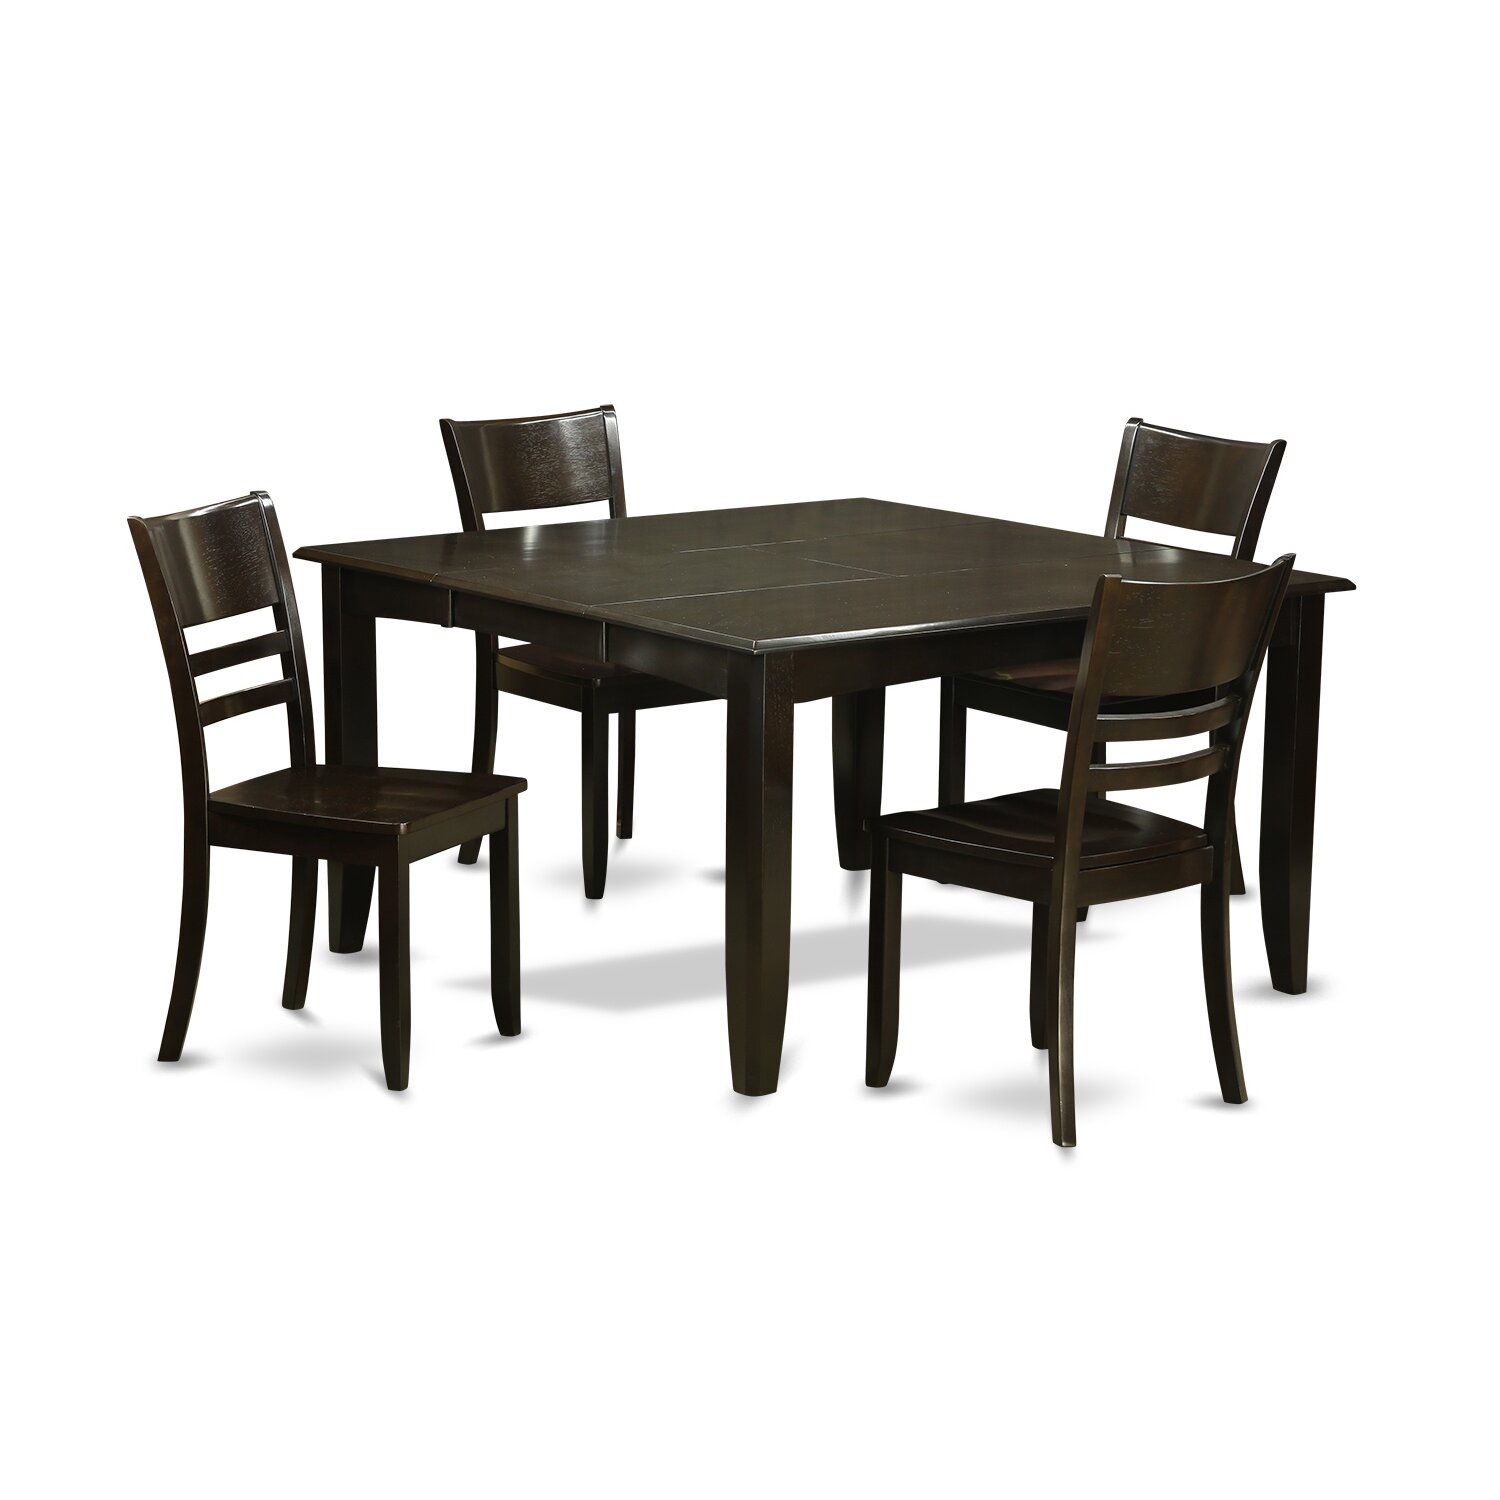 Wooden Importers Parfait 5 Piece Dining Set Wayfair